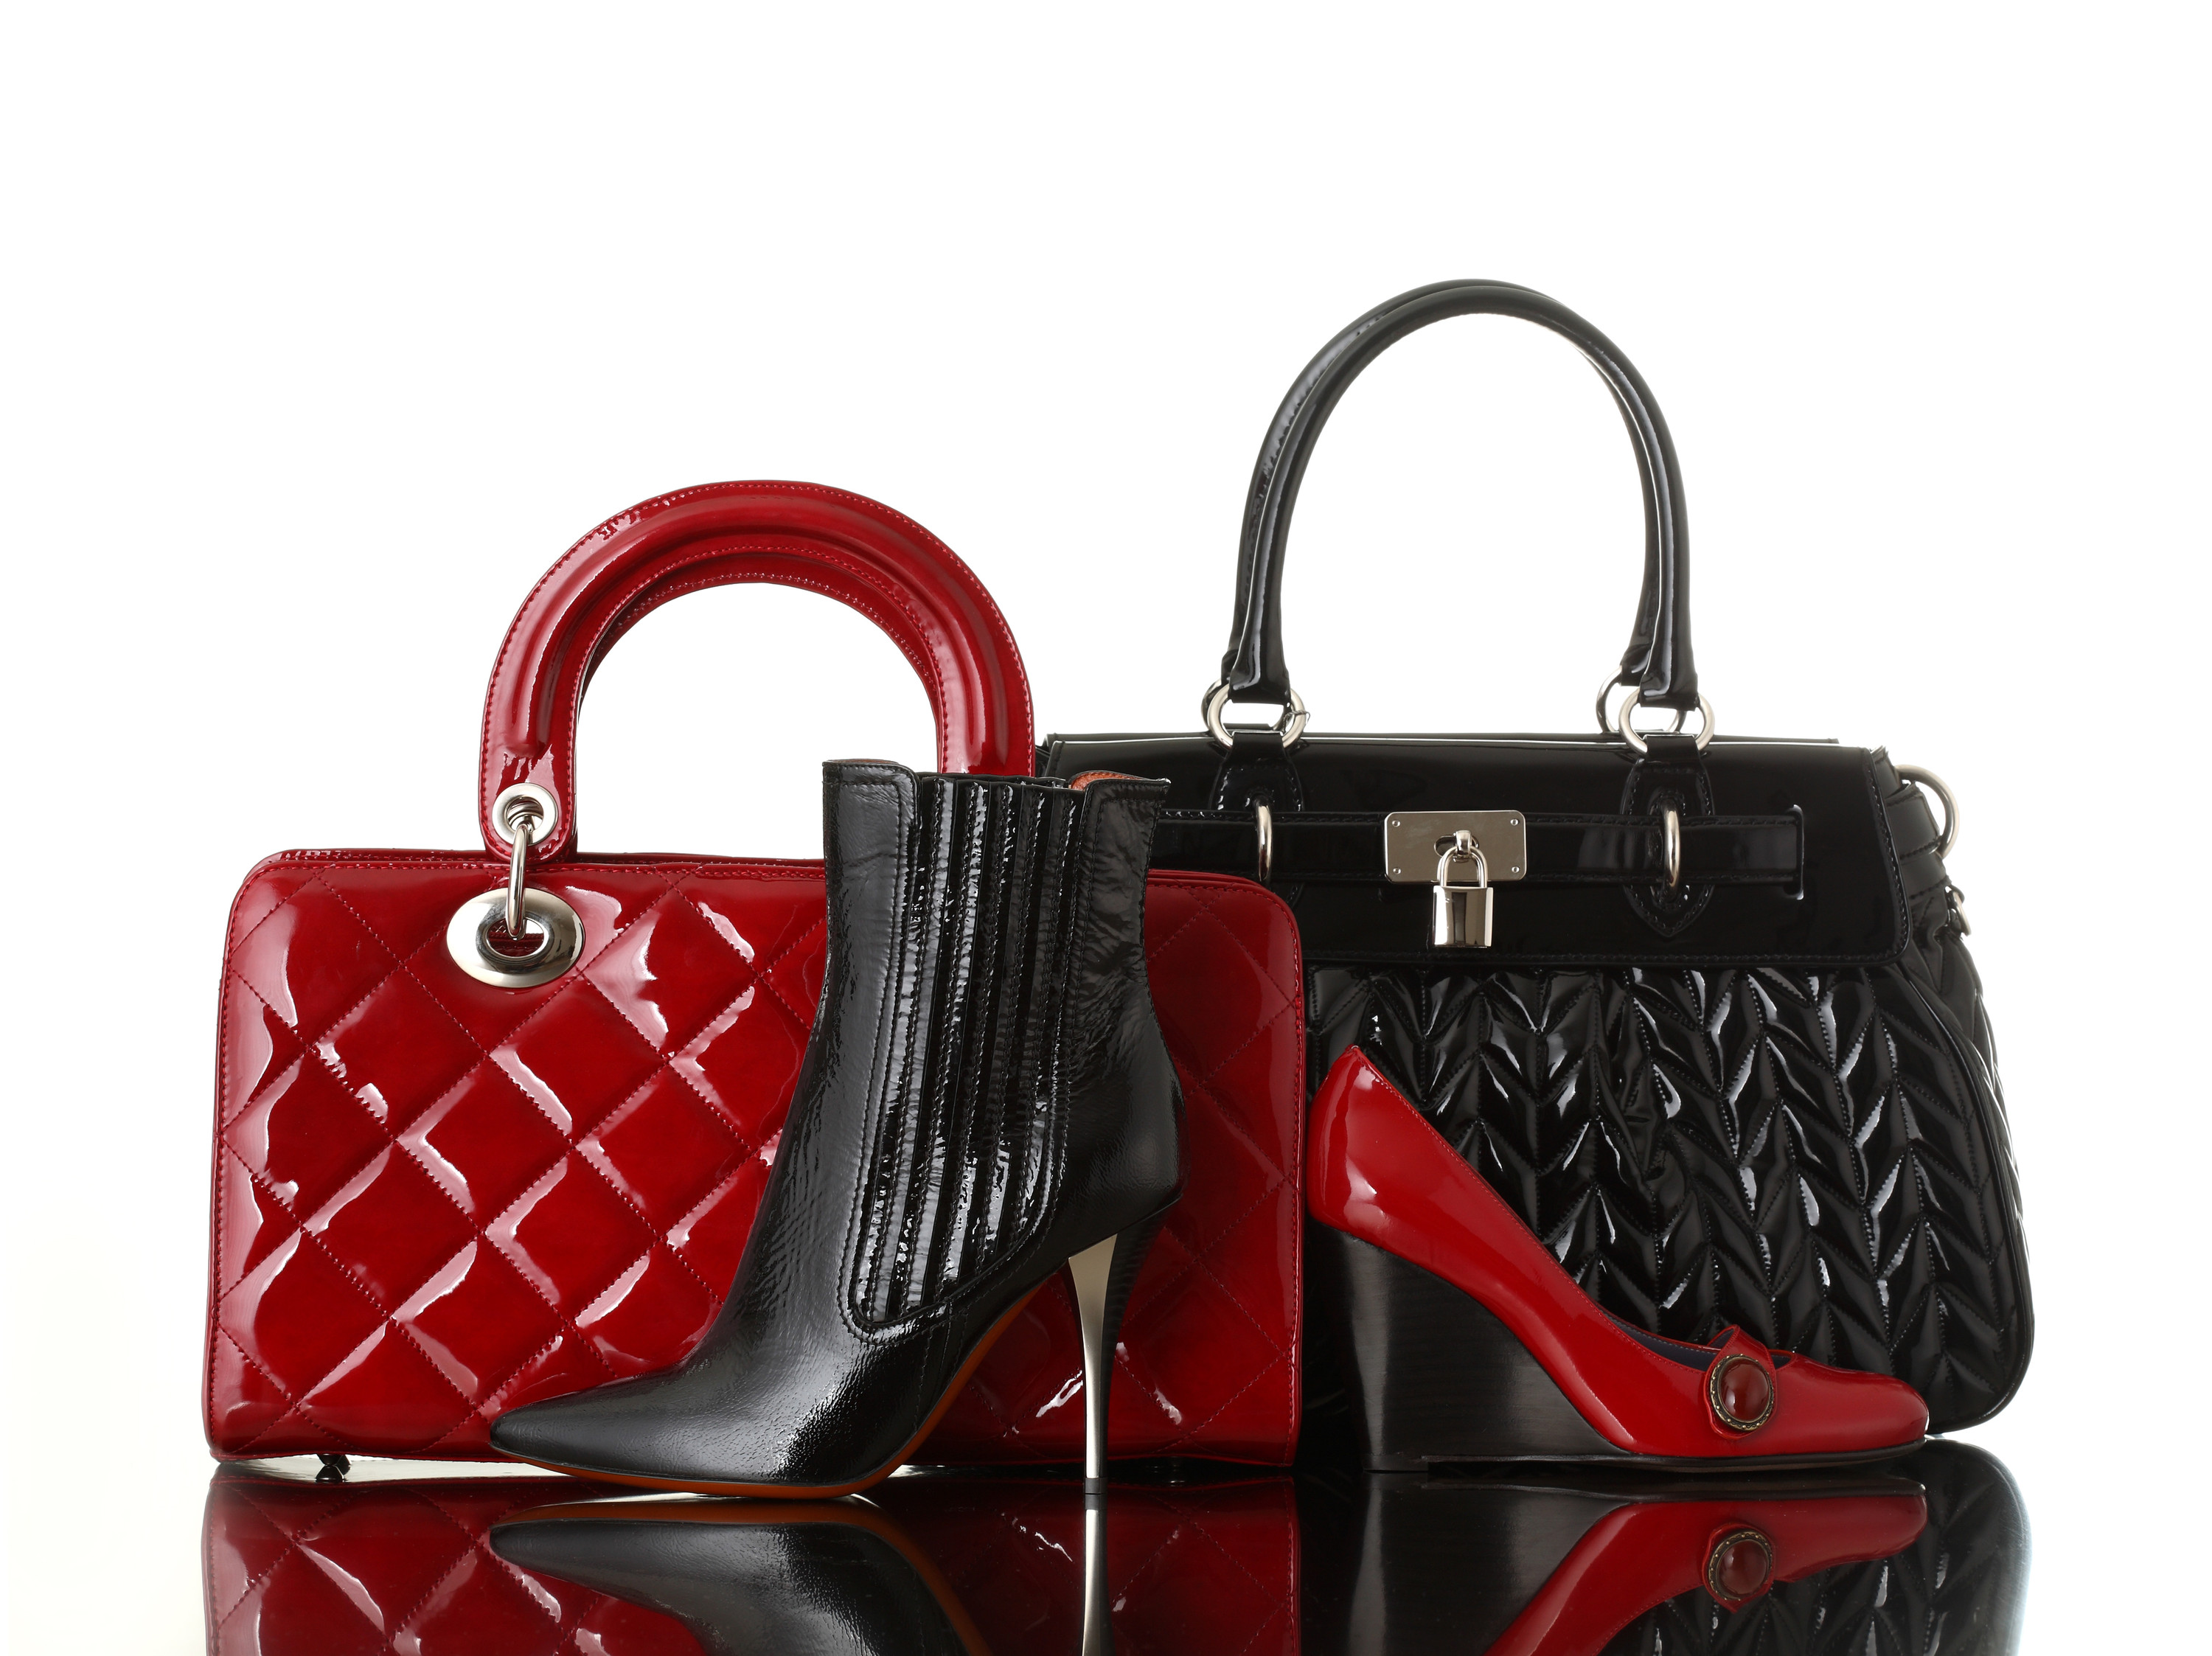 Shoes and a handbag. (Photo courtesy of © Can Stock Photo Inc. / stokkete)